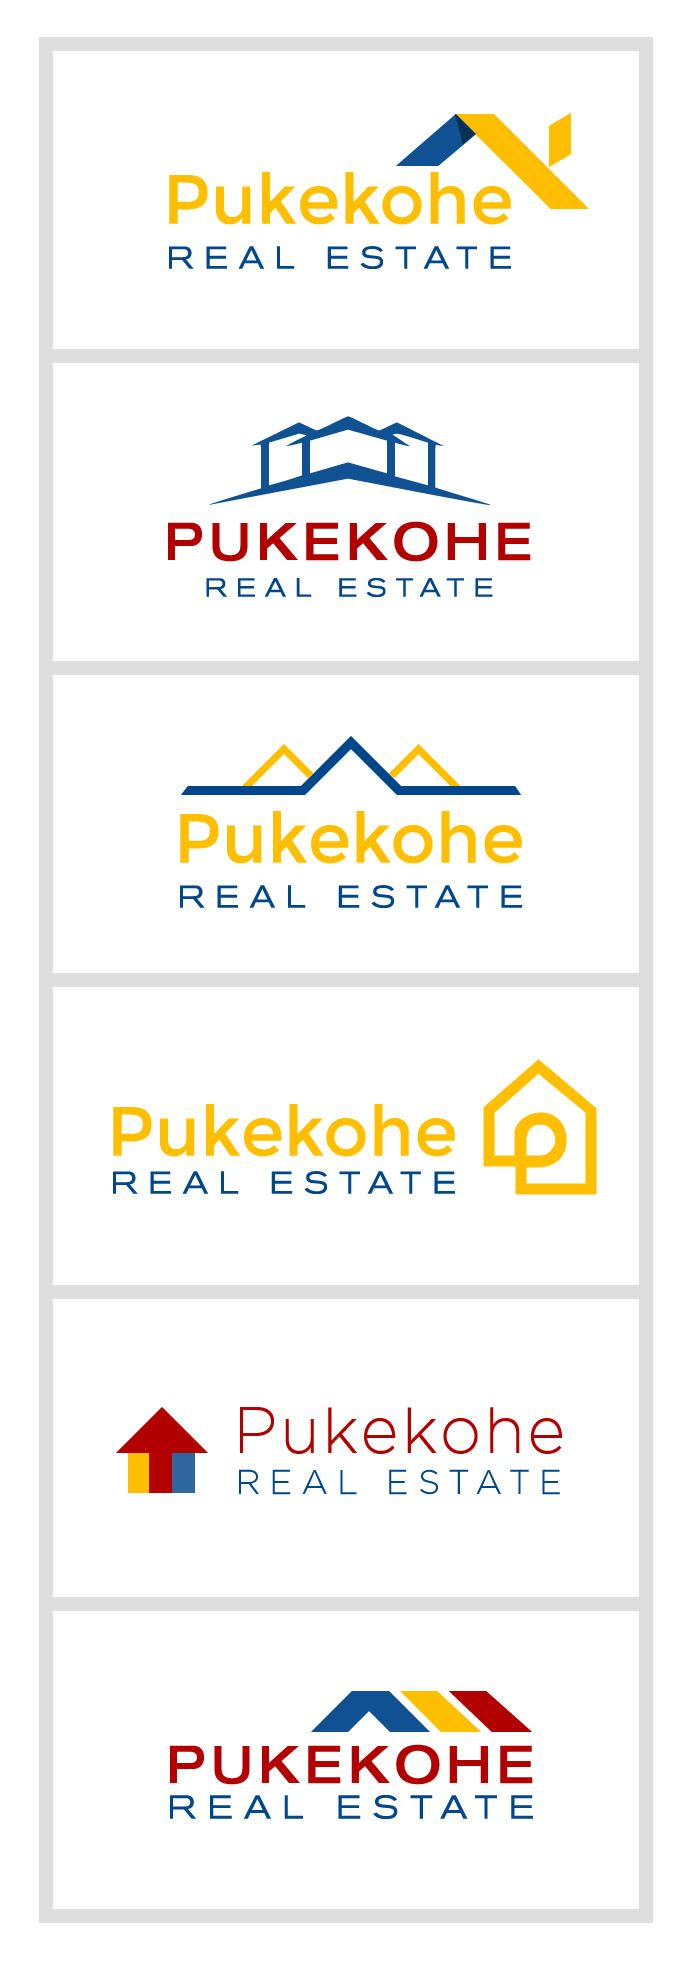 Pukekohe Real Estate